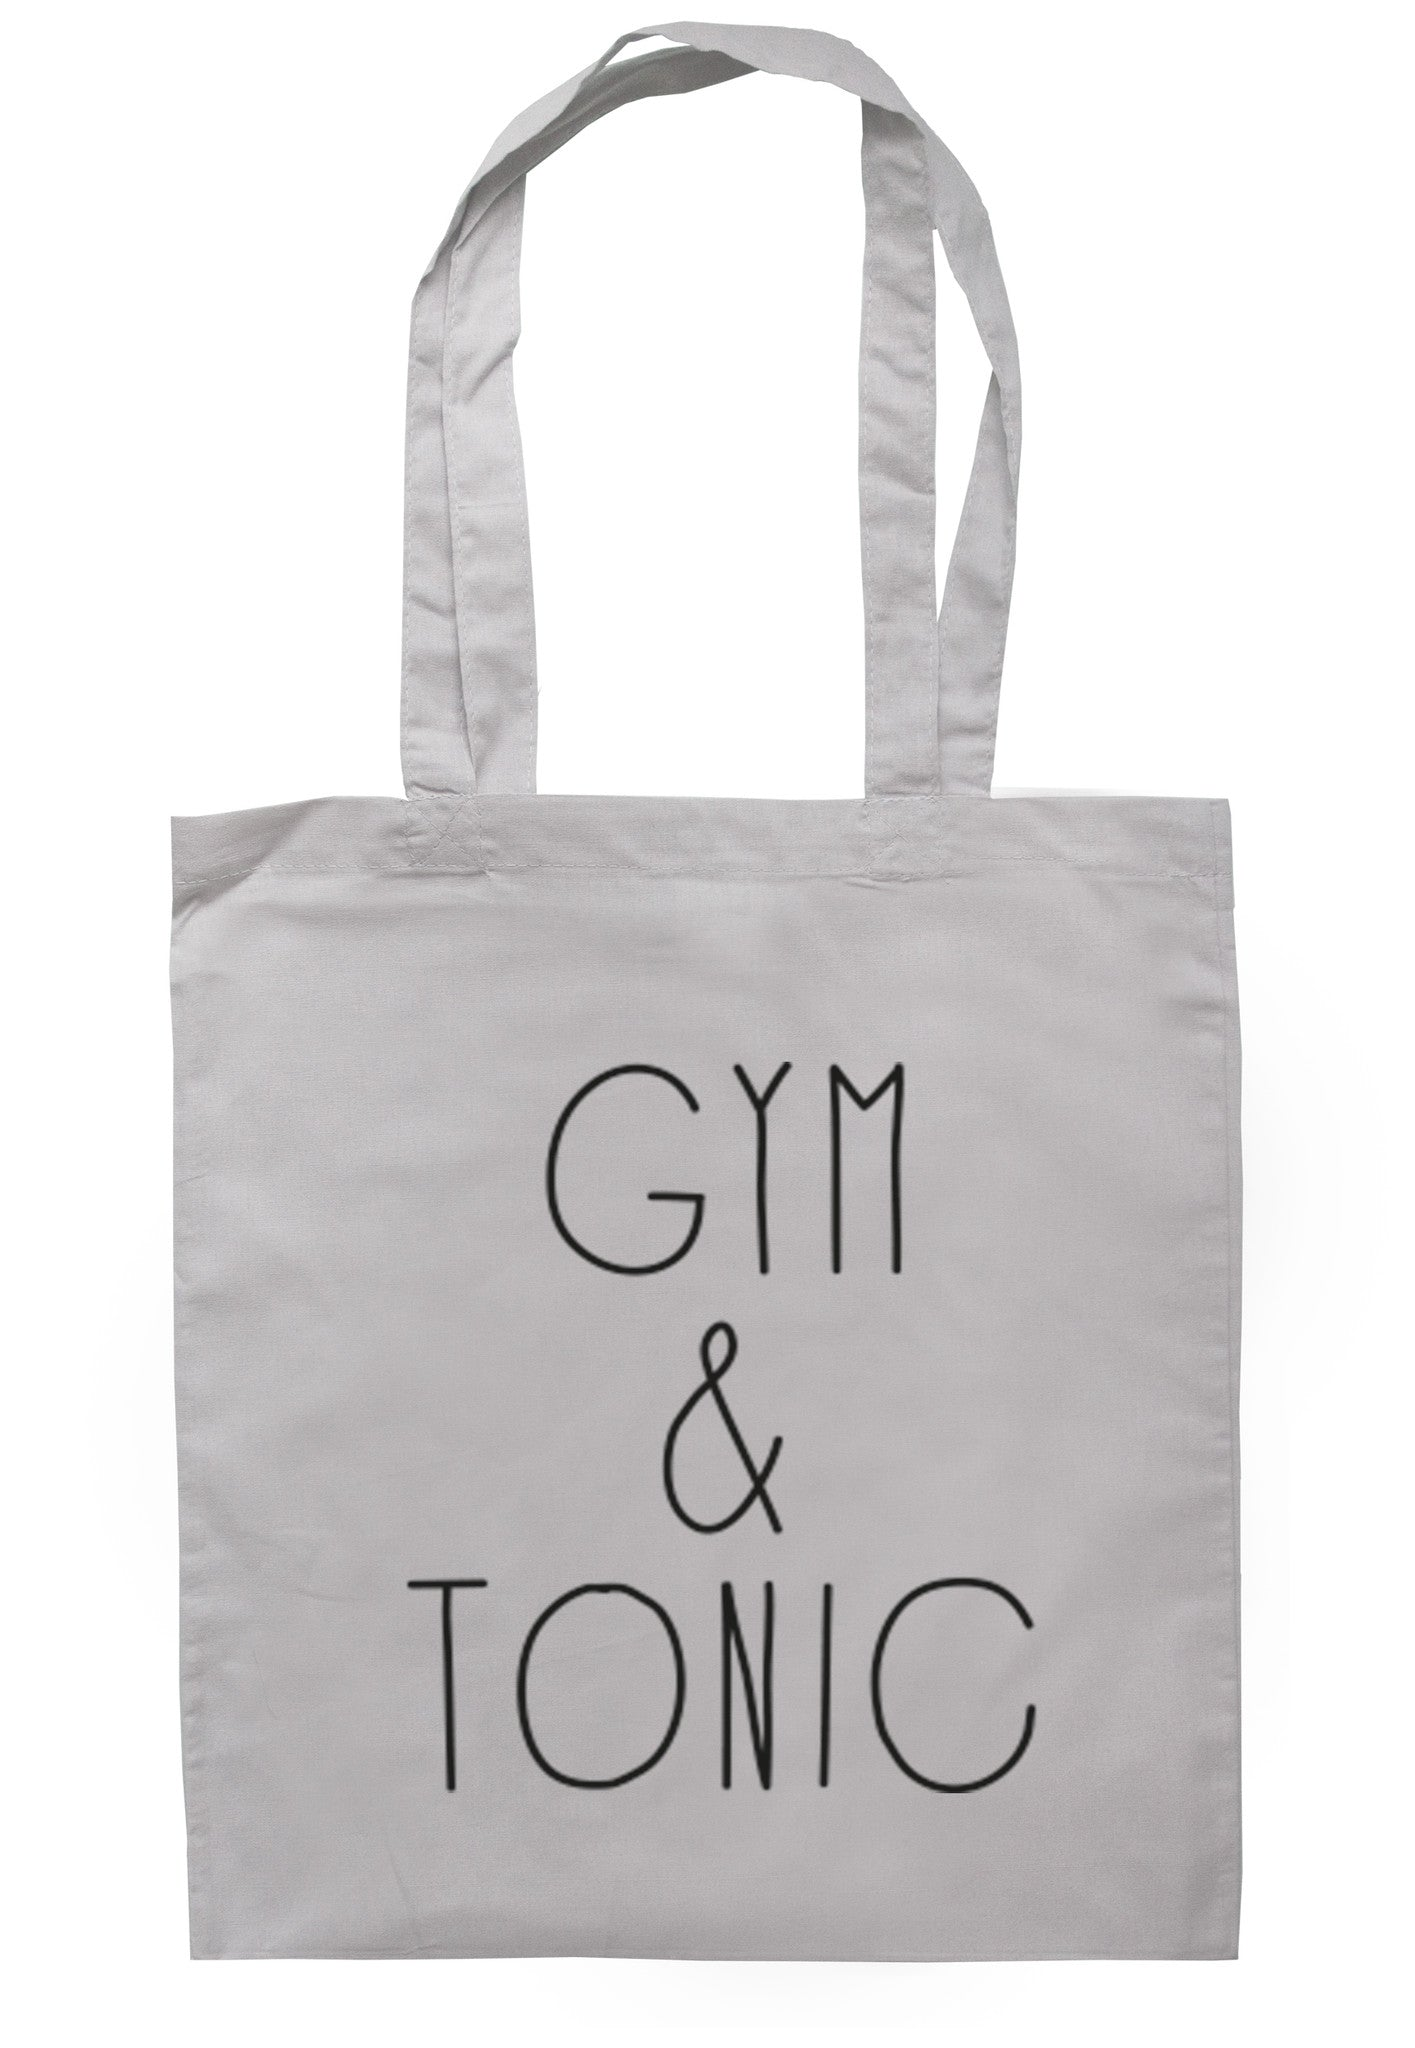 Gym & Tonic Tote Bag TB0089 - Illustrated Identity Ltd.